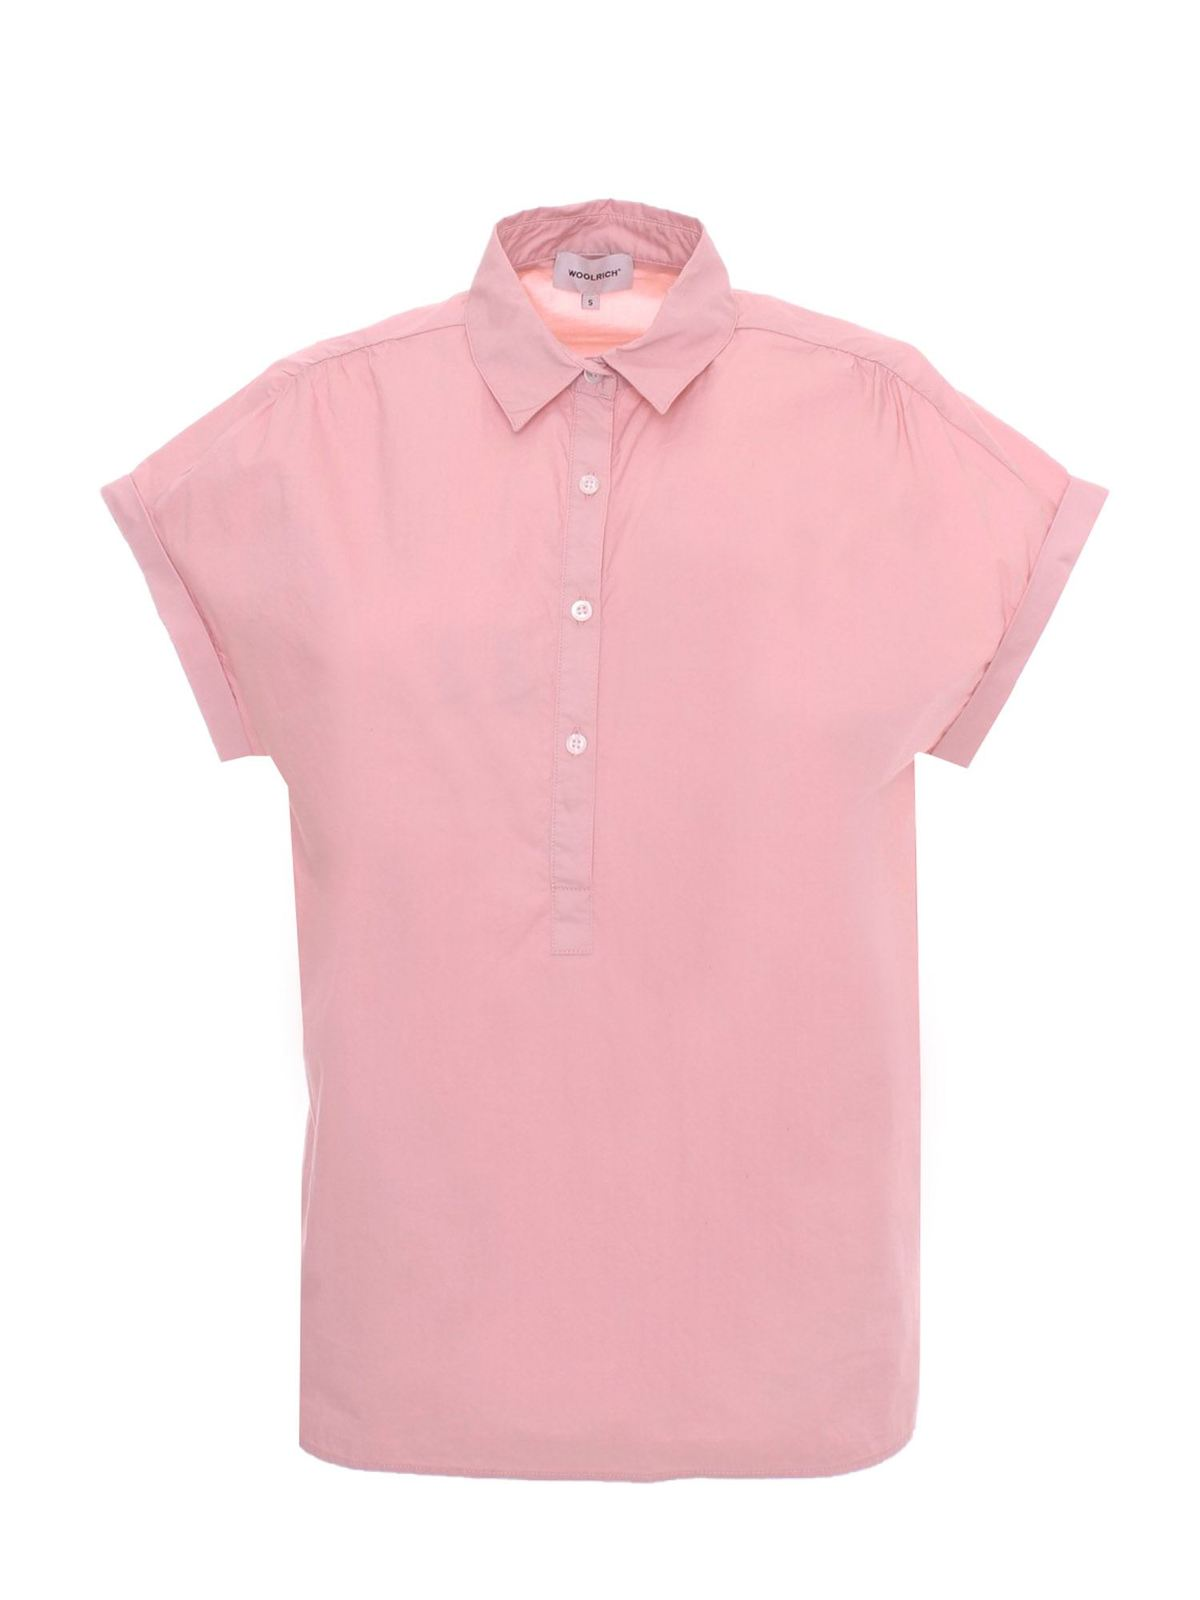 Woolrich BUTTONS BLOUSE IN PINK